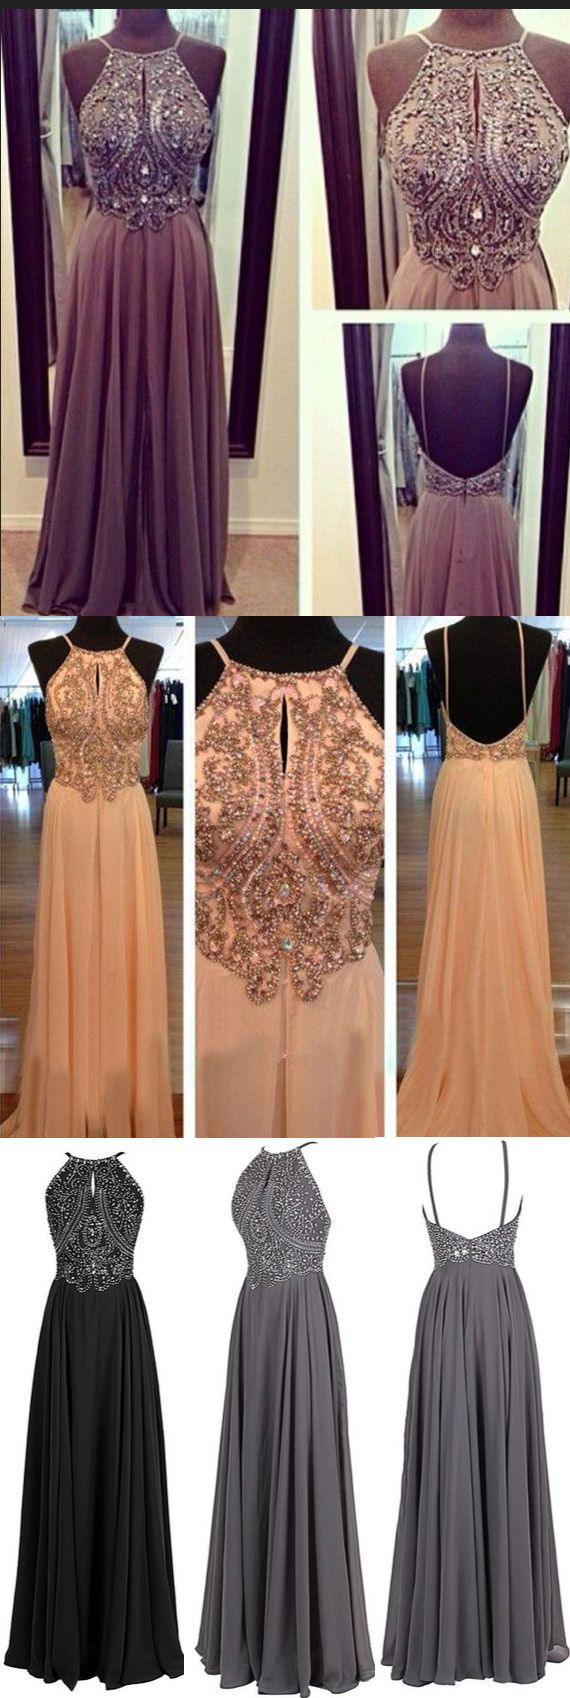 Open back prom dressessexy prom dressescheap prom dresses short